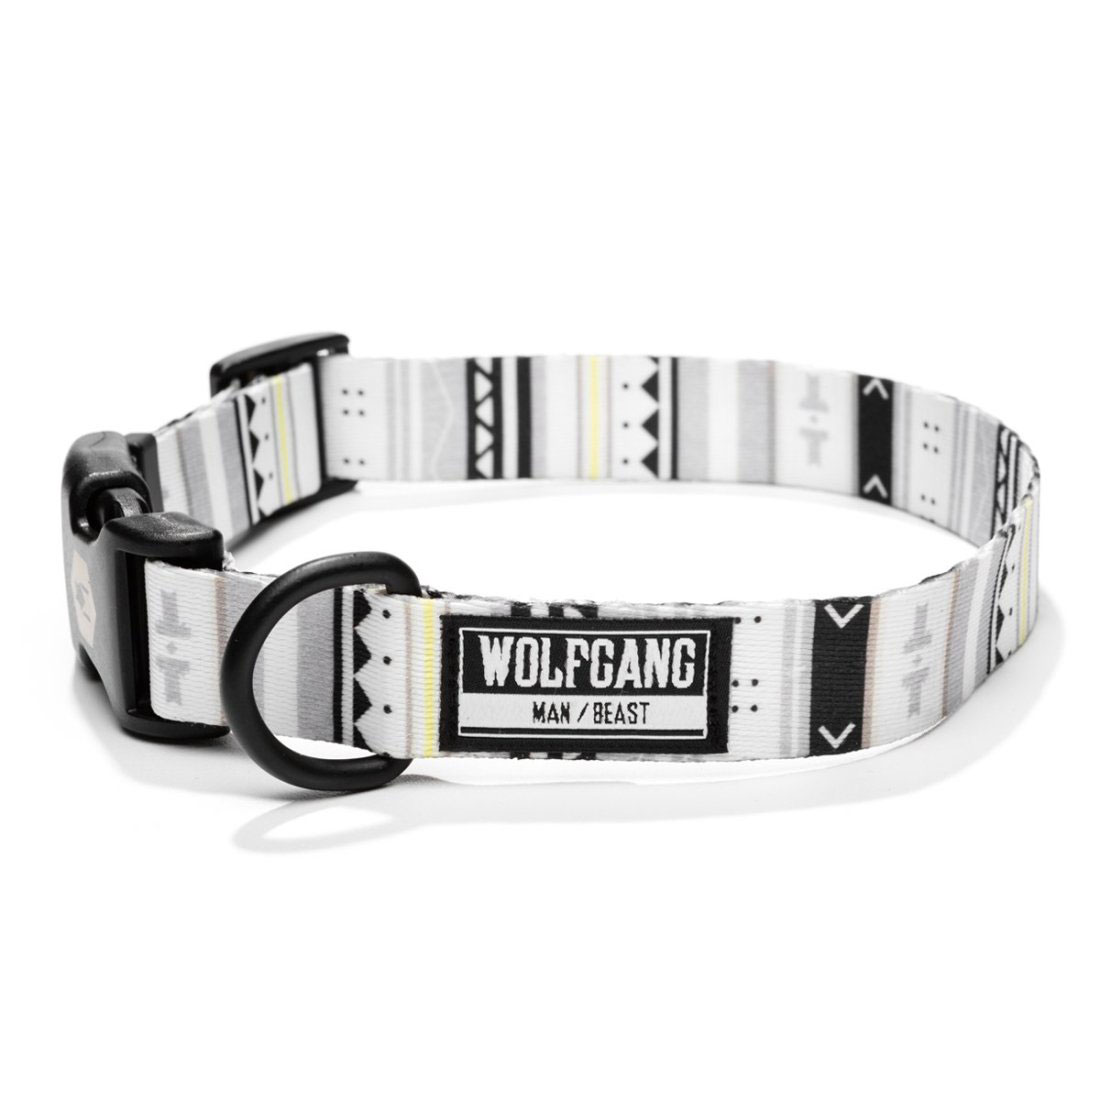 Wolfgang WhiteOwl Dog Collar